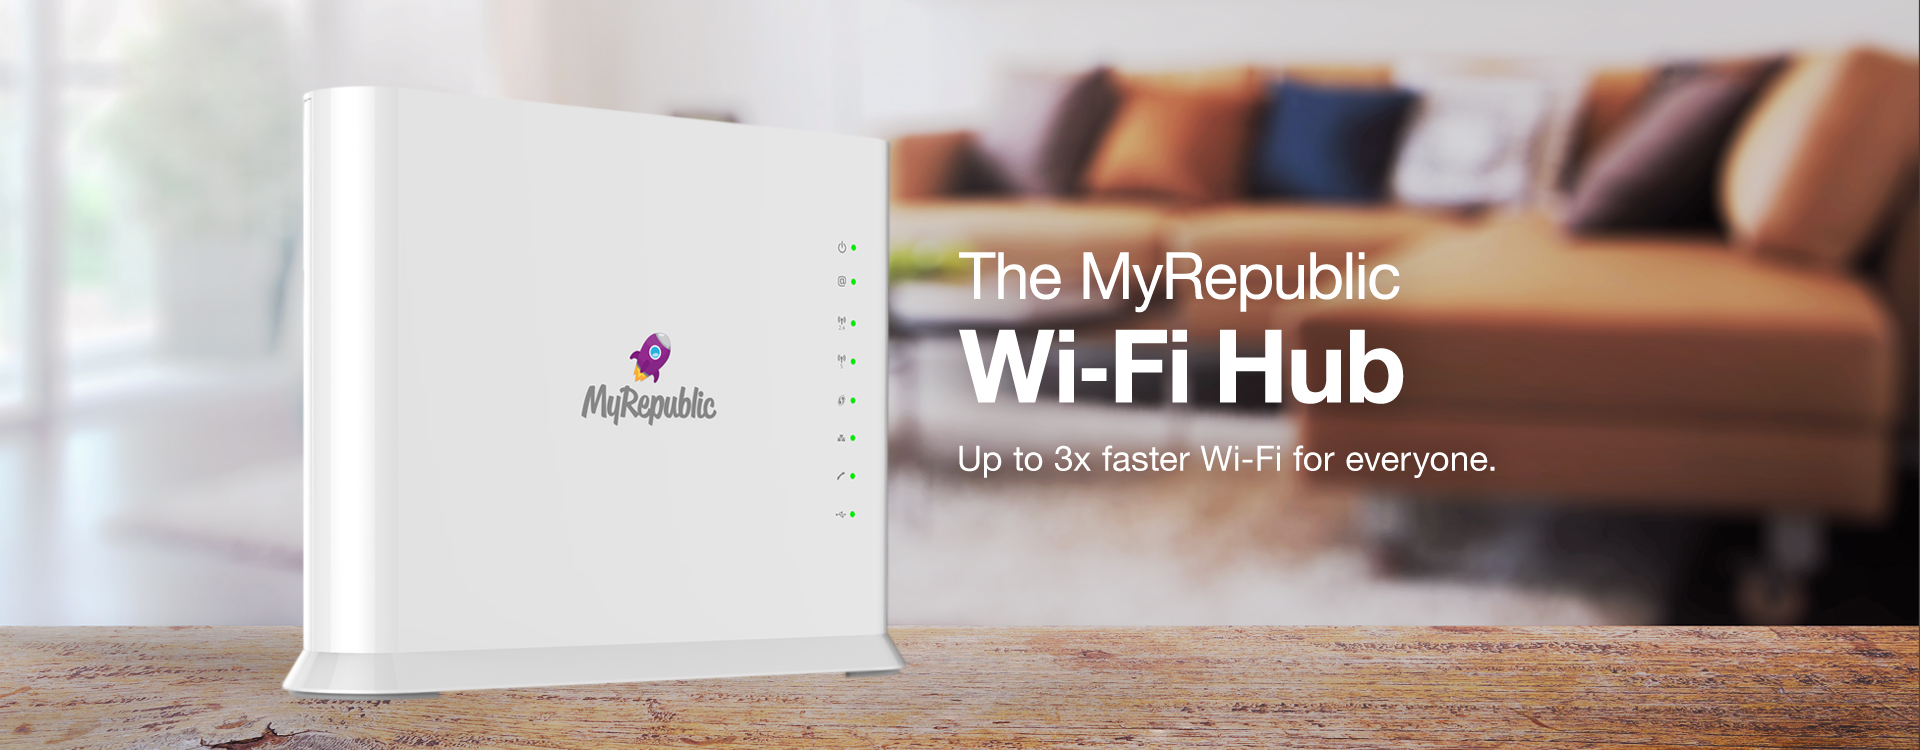 The MyRepublic Wi-Fi Hub. Up to 3x faster Wi-Fi for everyone.